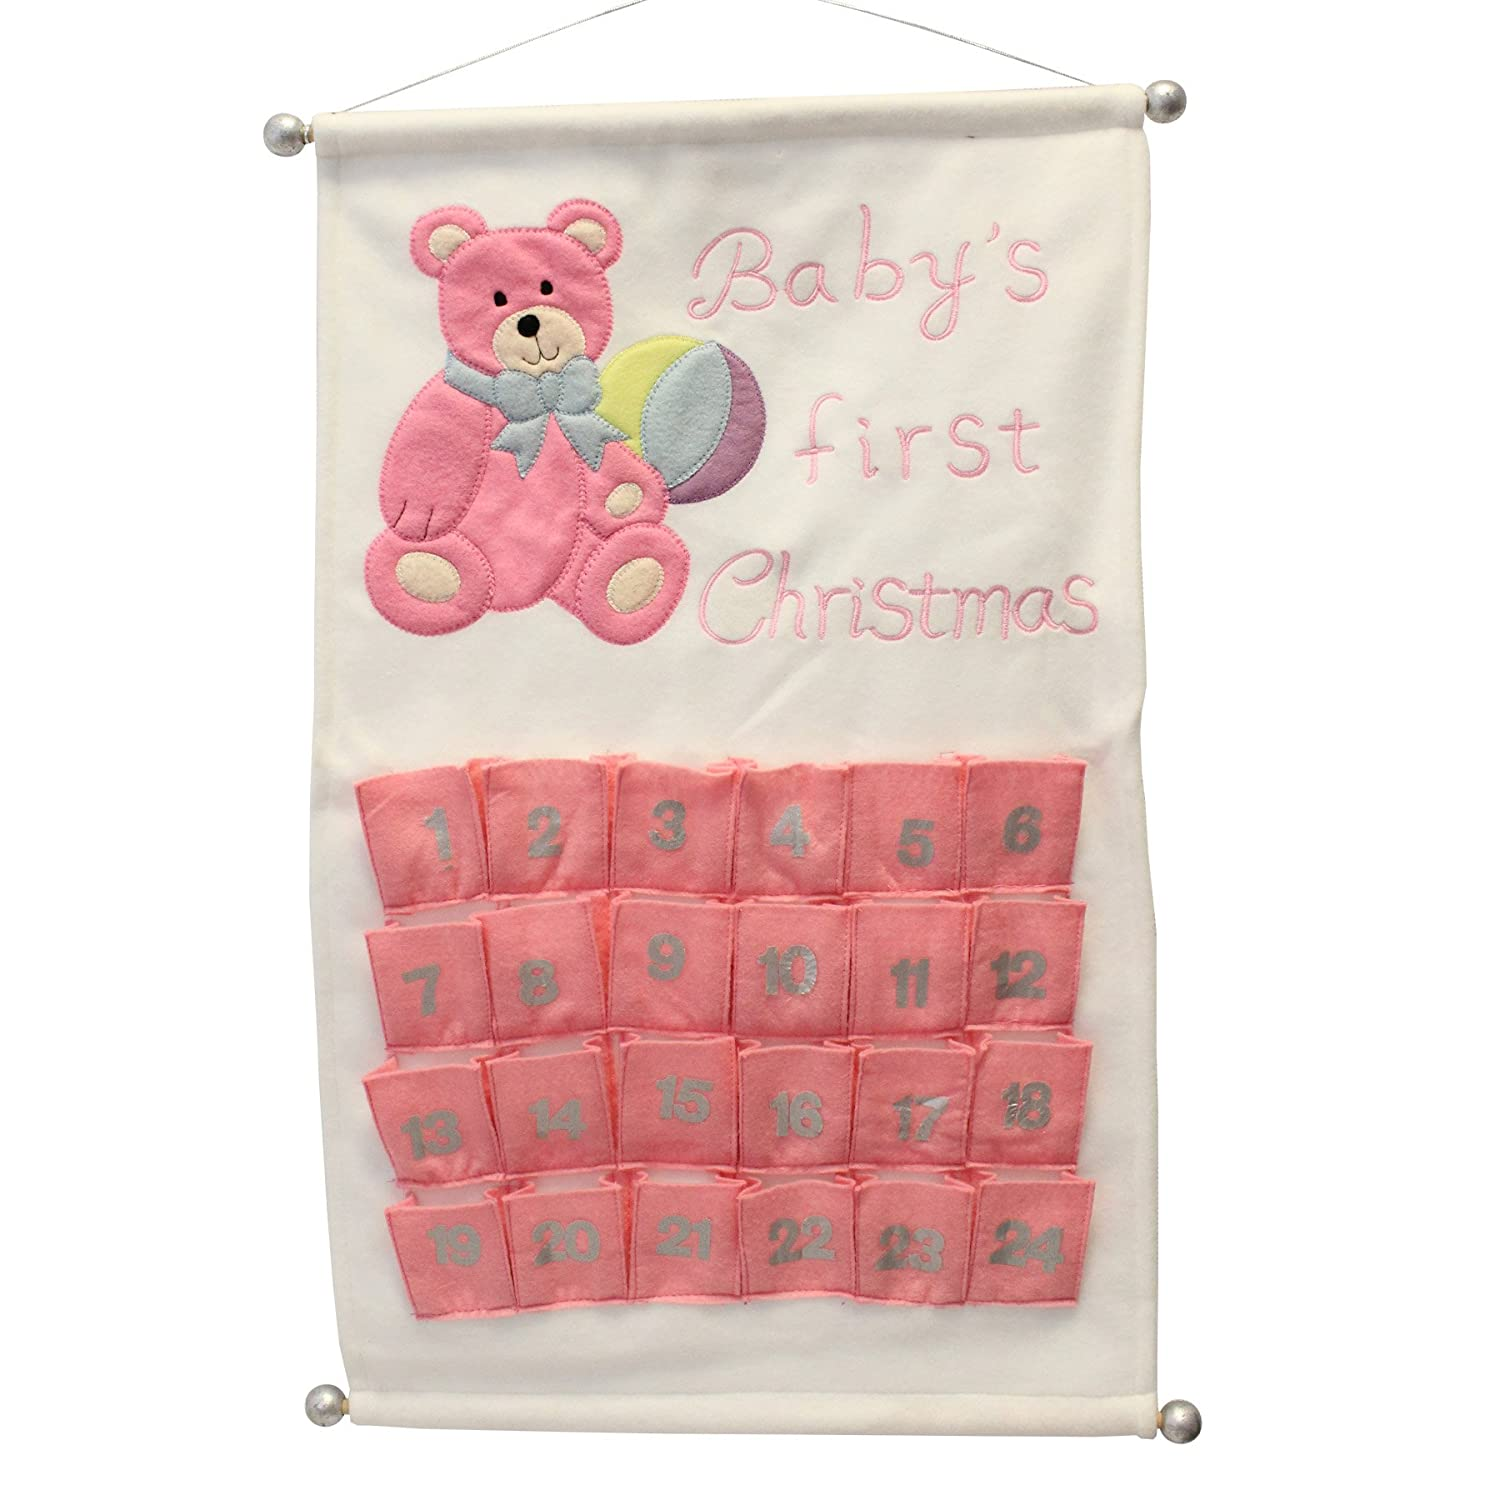 Baby's First Christmas Scroll Advent Calendar - Add your own Treats - Pink Premier Decorations